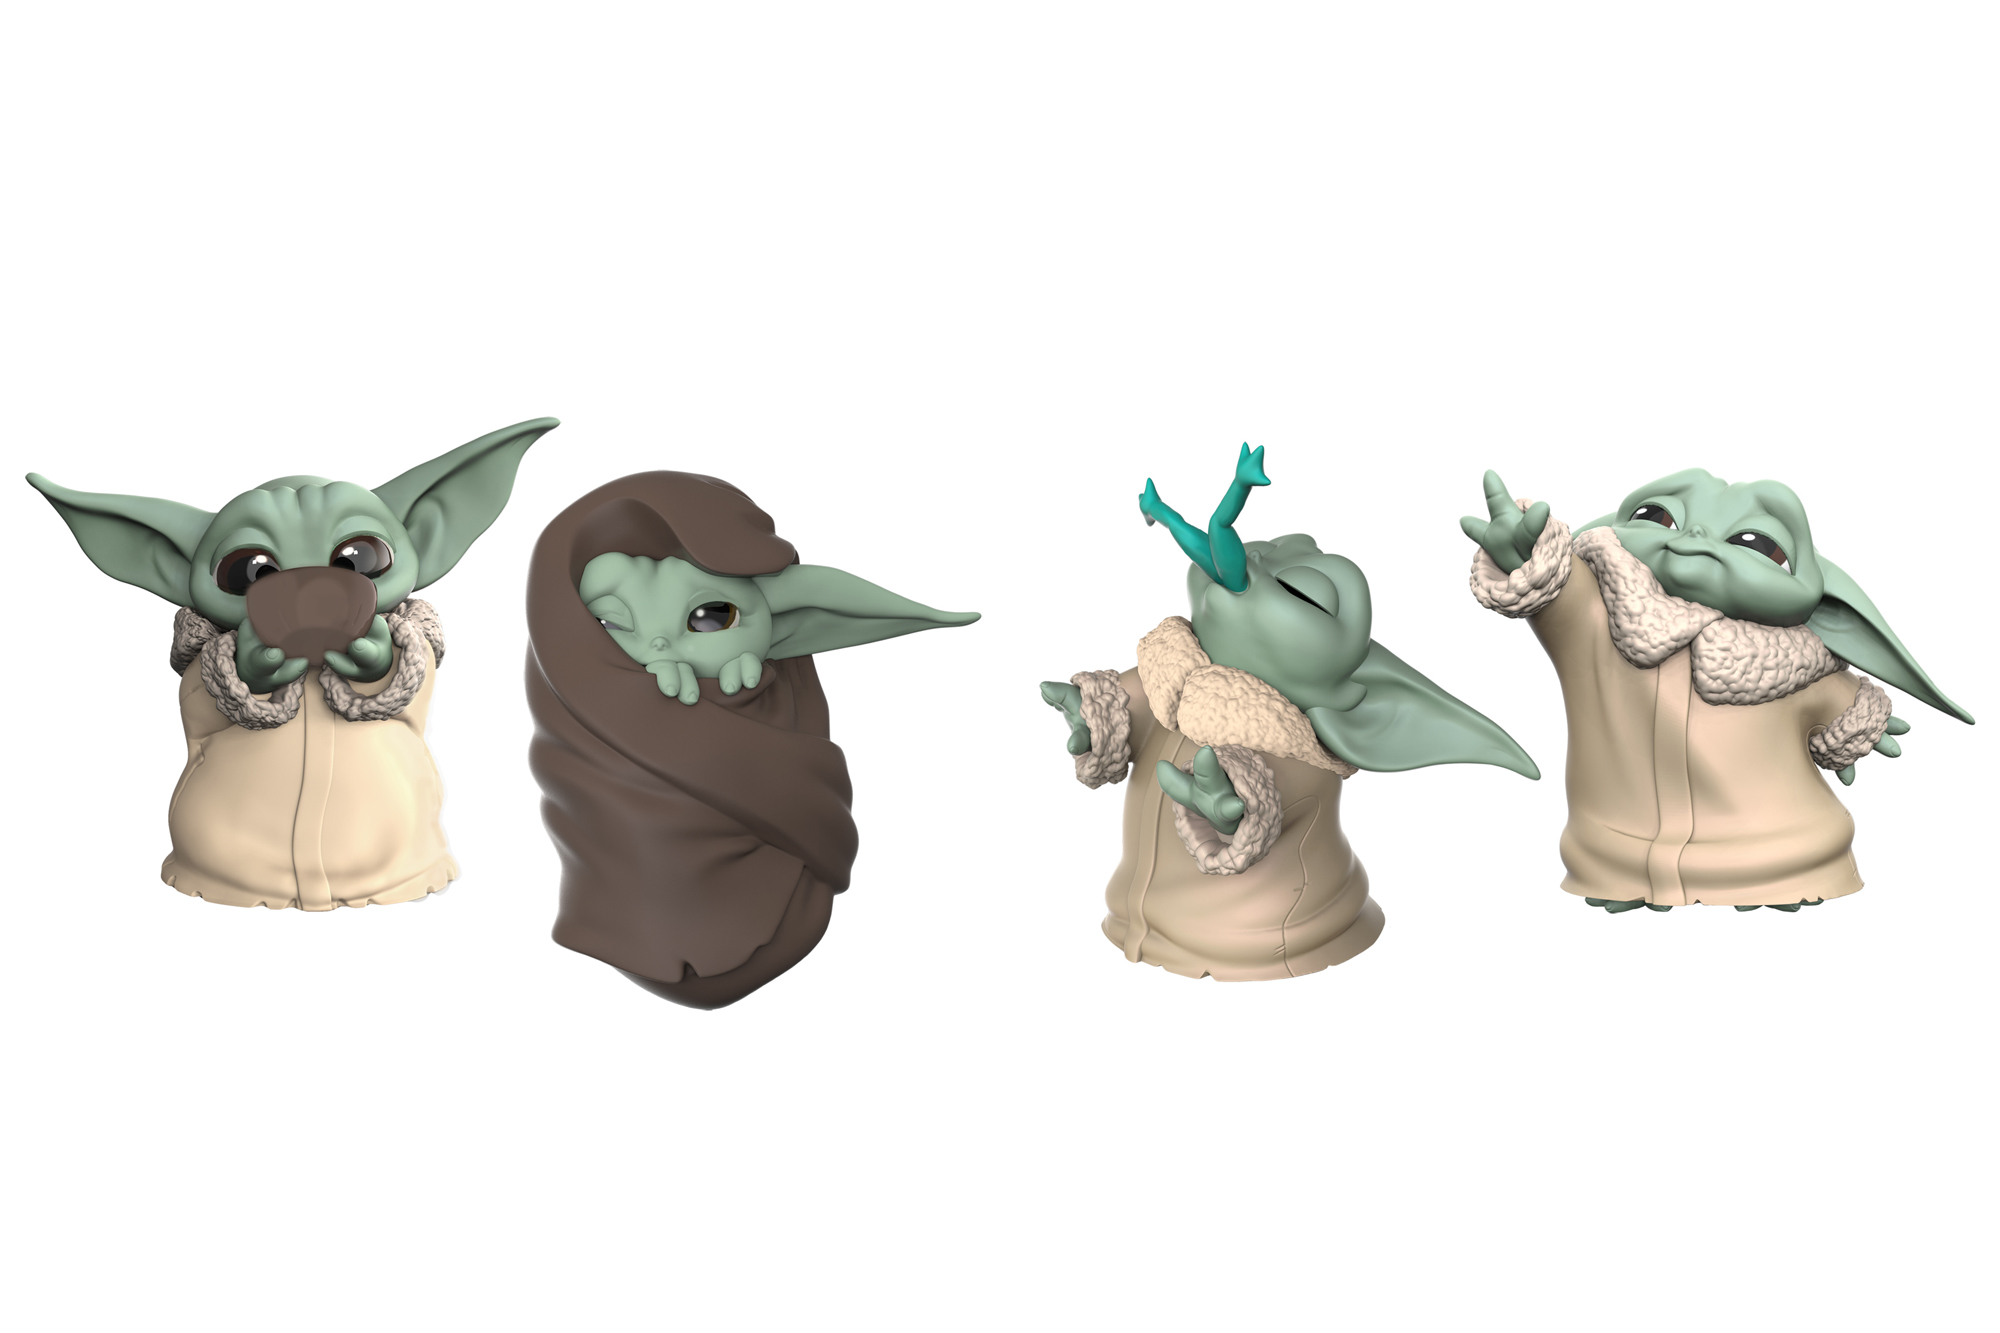 Hasbro S Baby Yoda Talking Plush Dolls Even Have The Bowl Of Soup